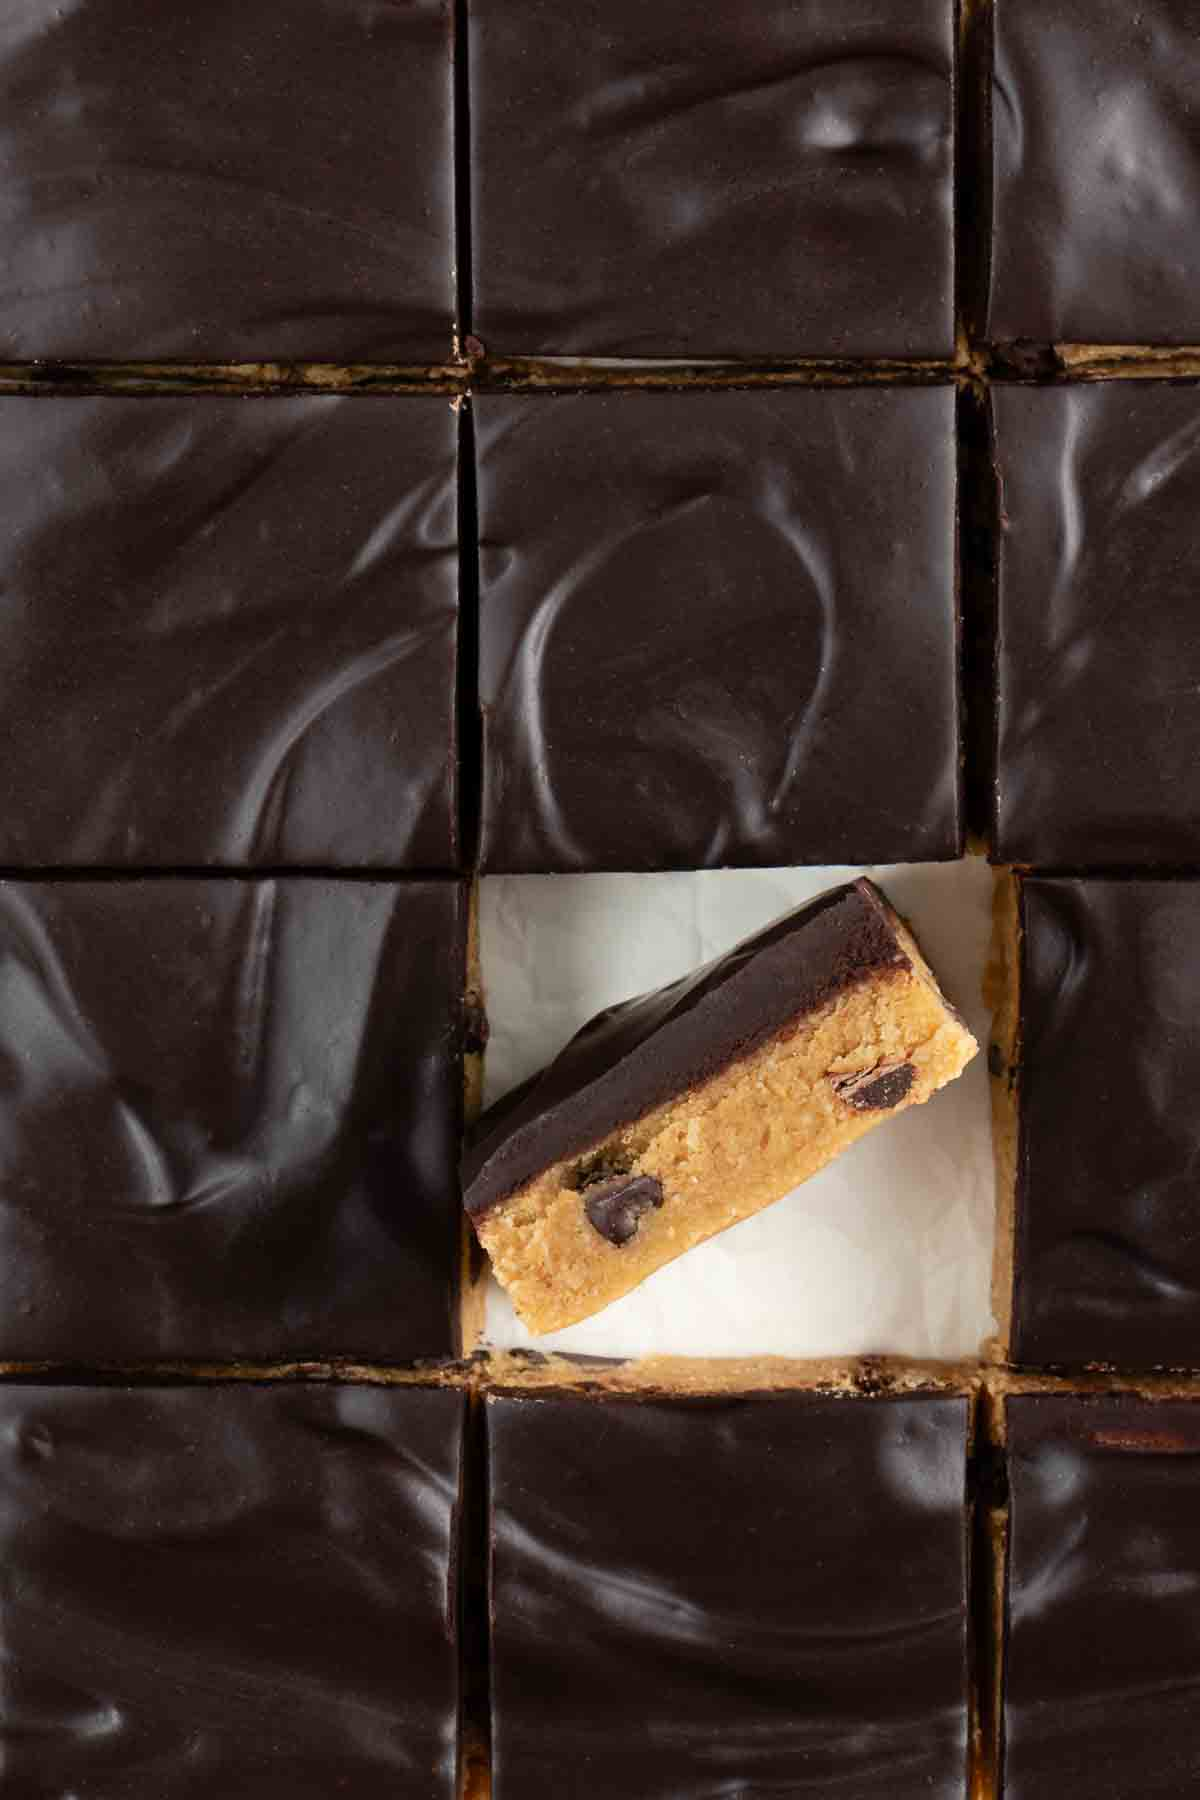 chocolate frosted no bake cookie dough bars sliced into squares with one bar on its side